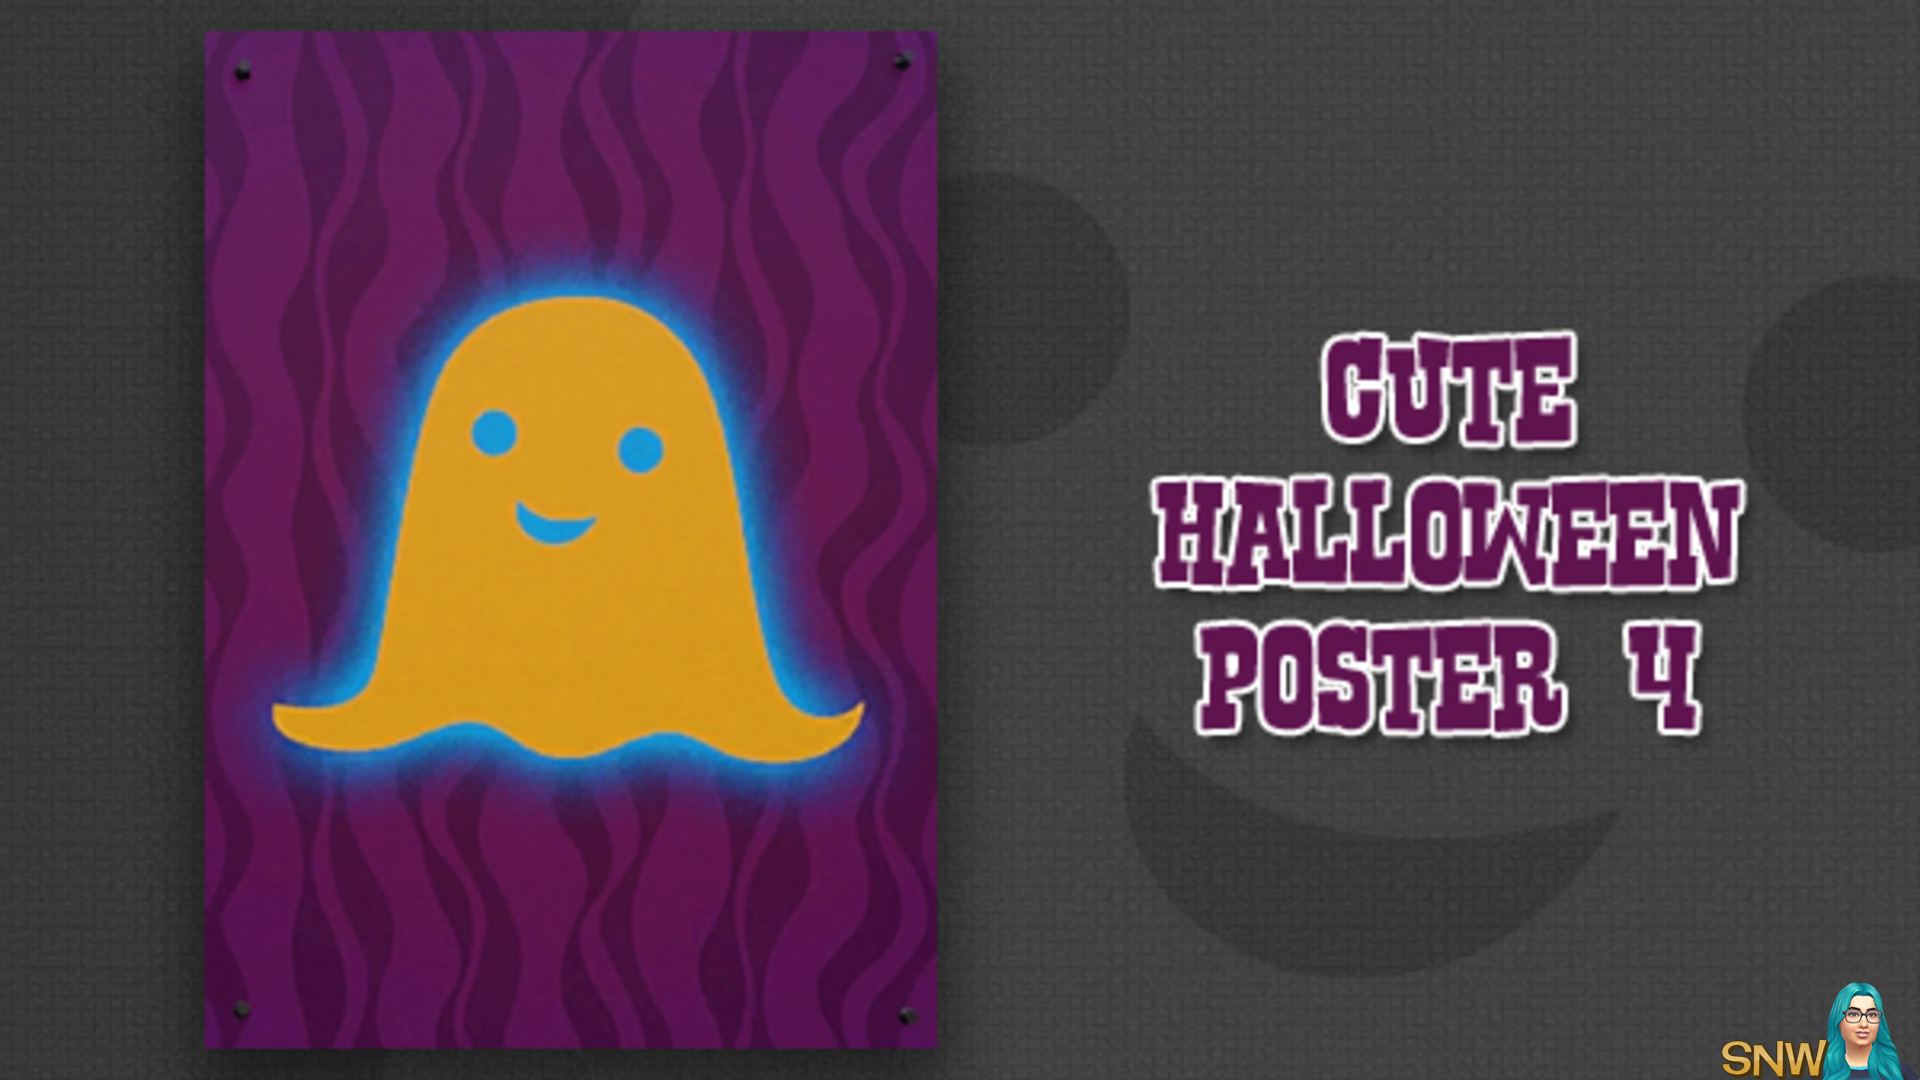 Cute Halloween poster #4 (Another spooky)